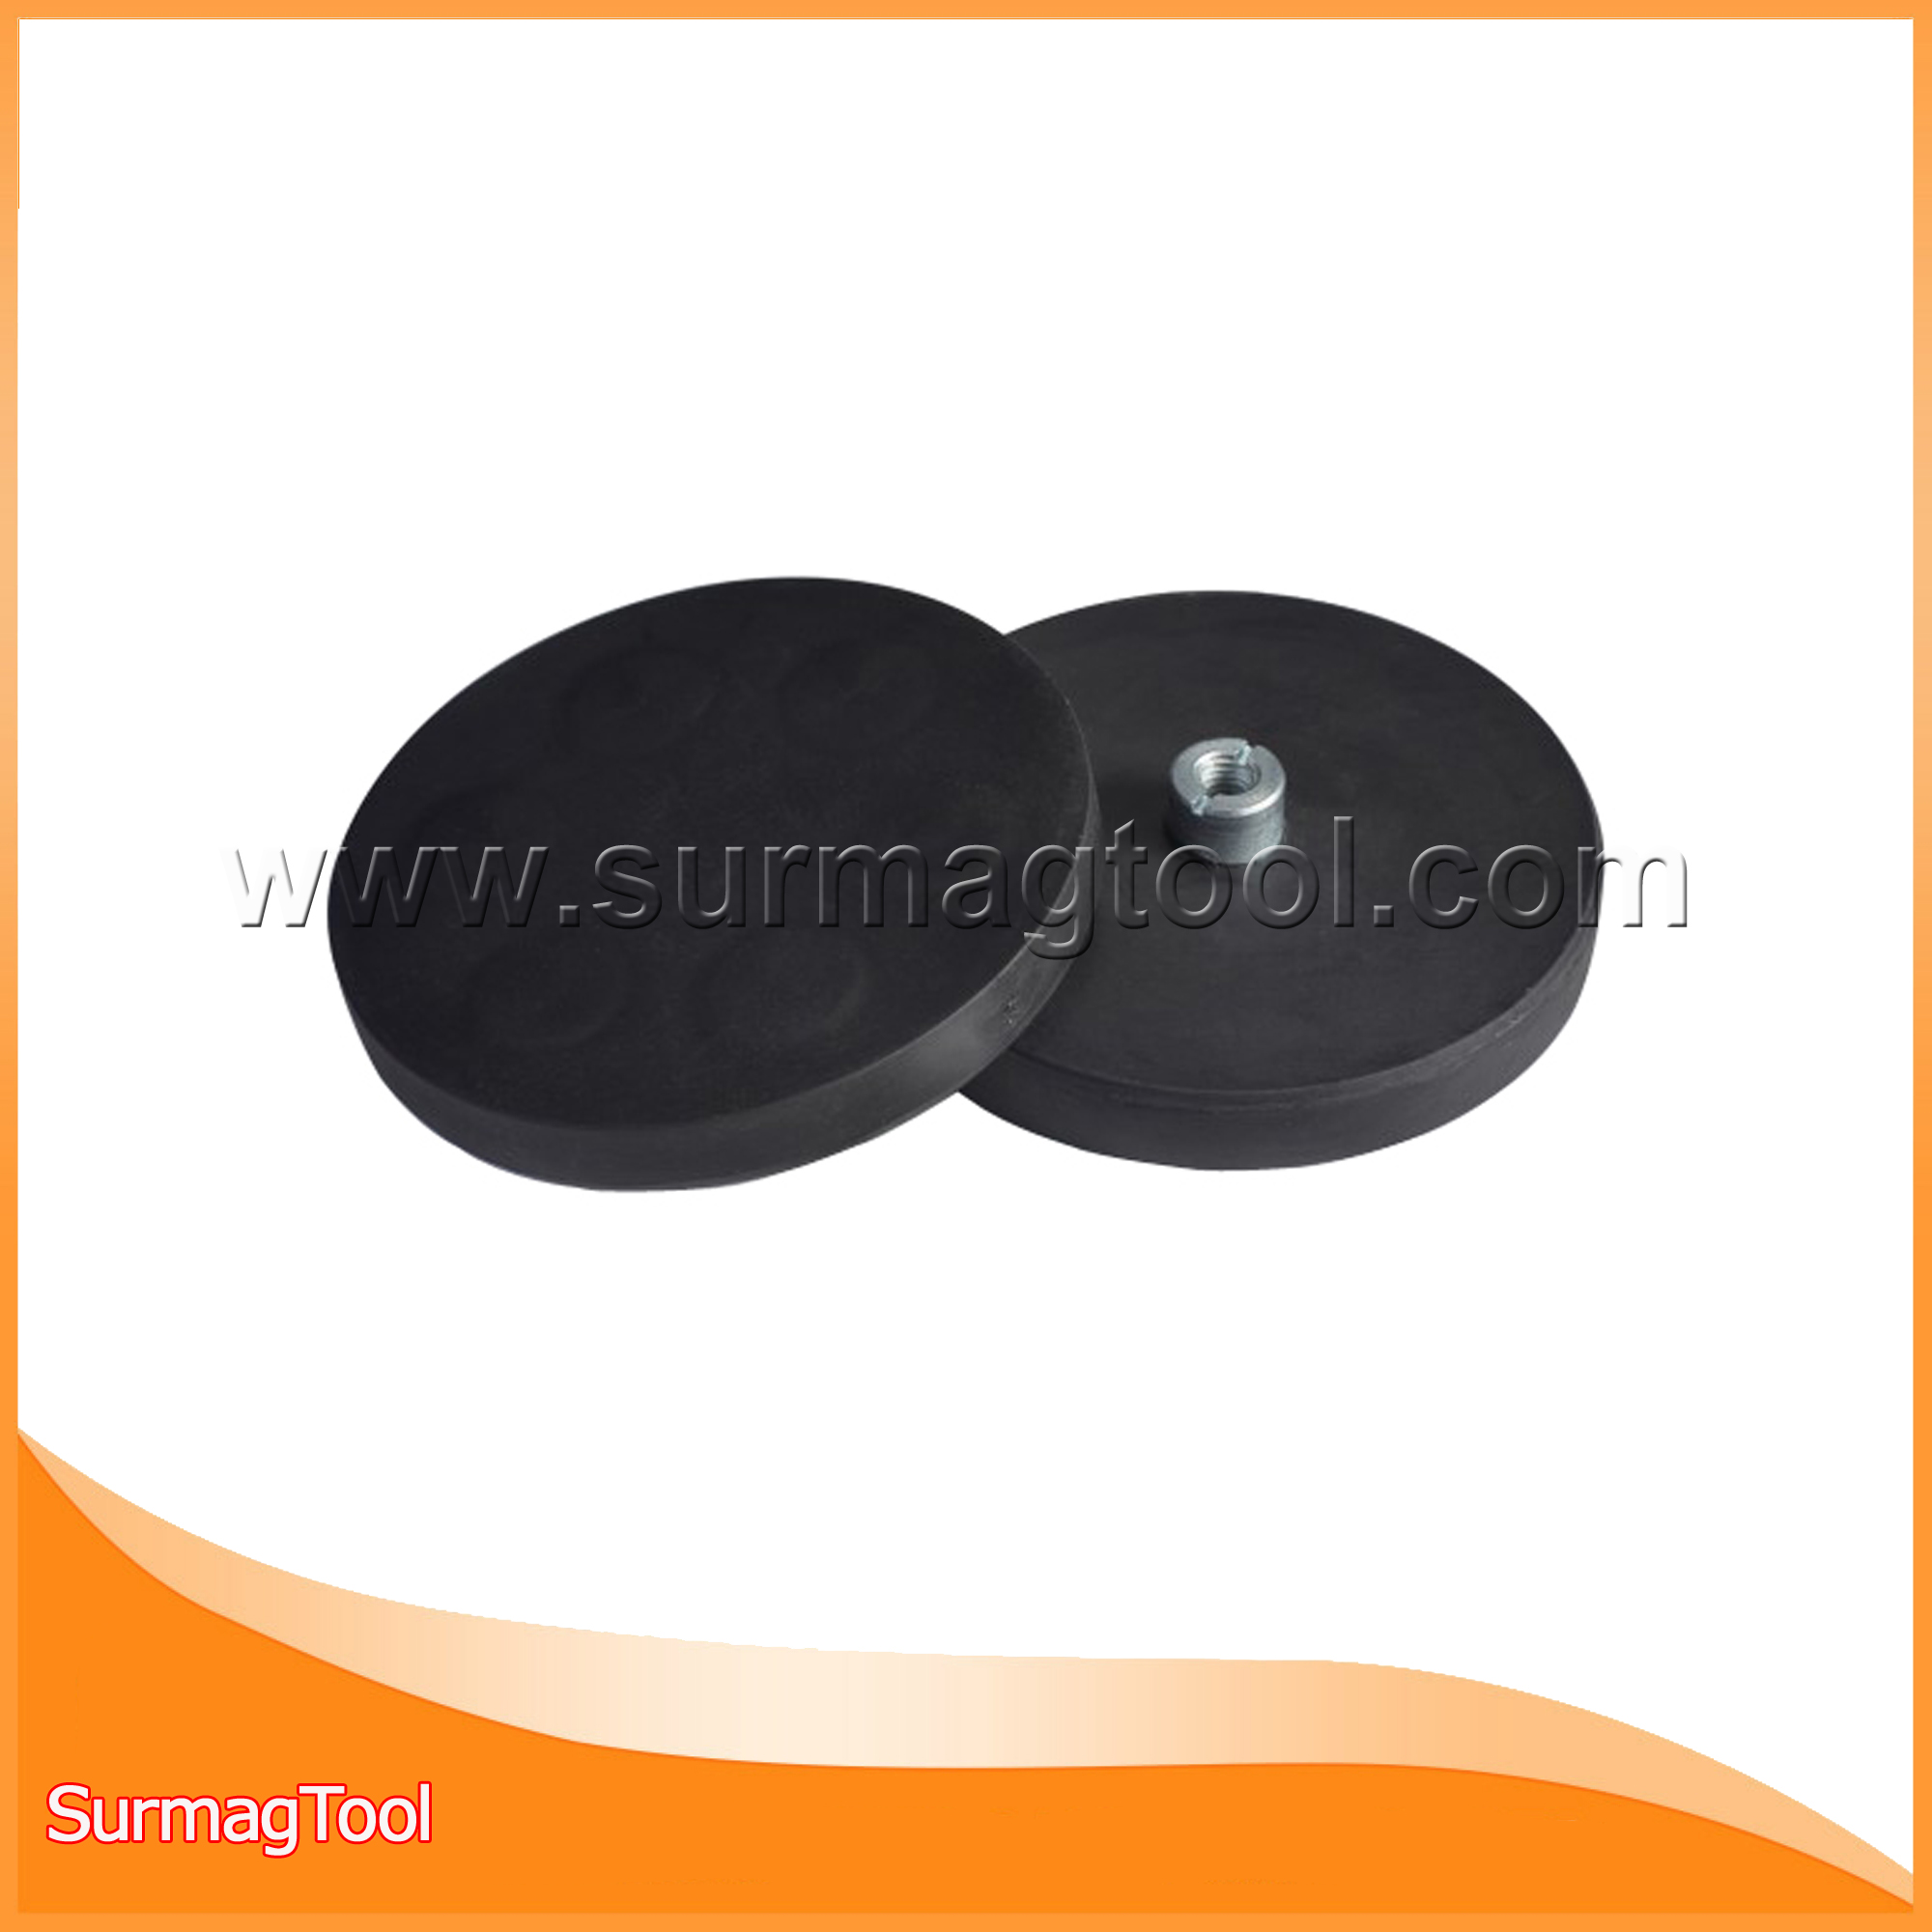 Neodymium pot magnet with rubber coated